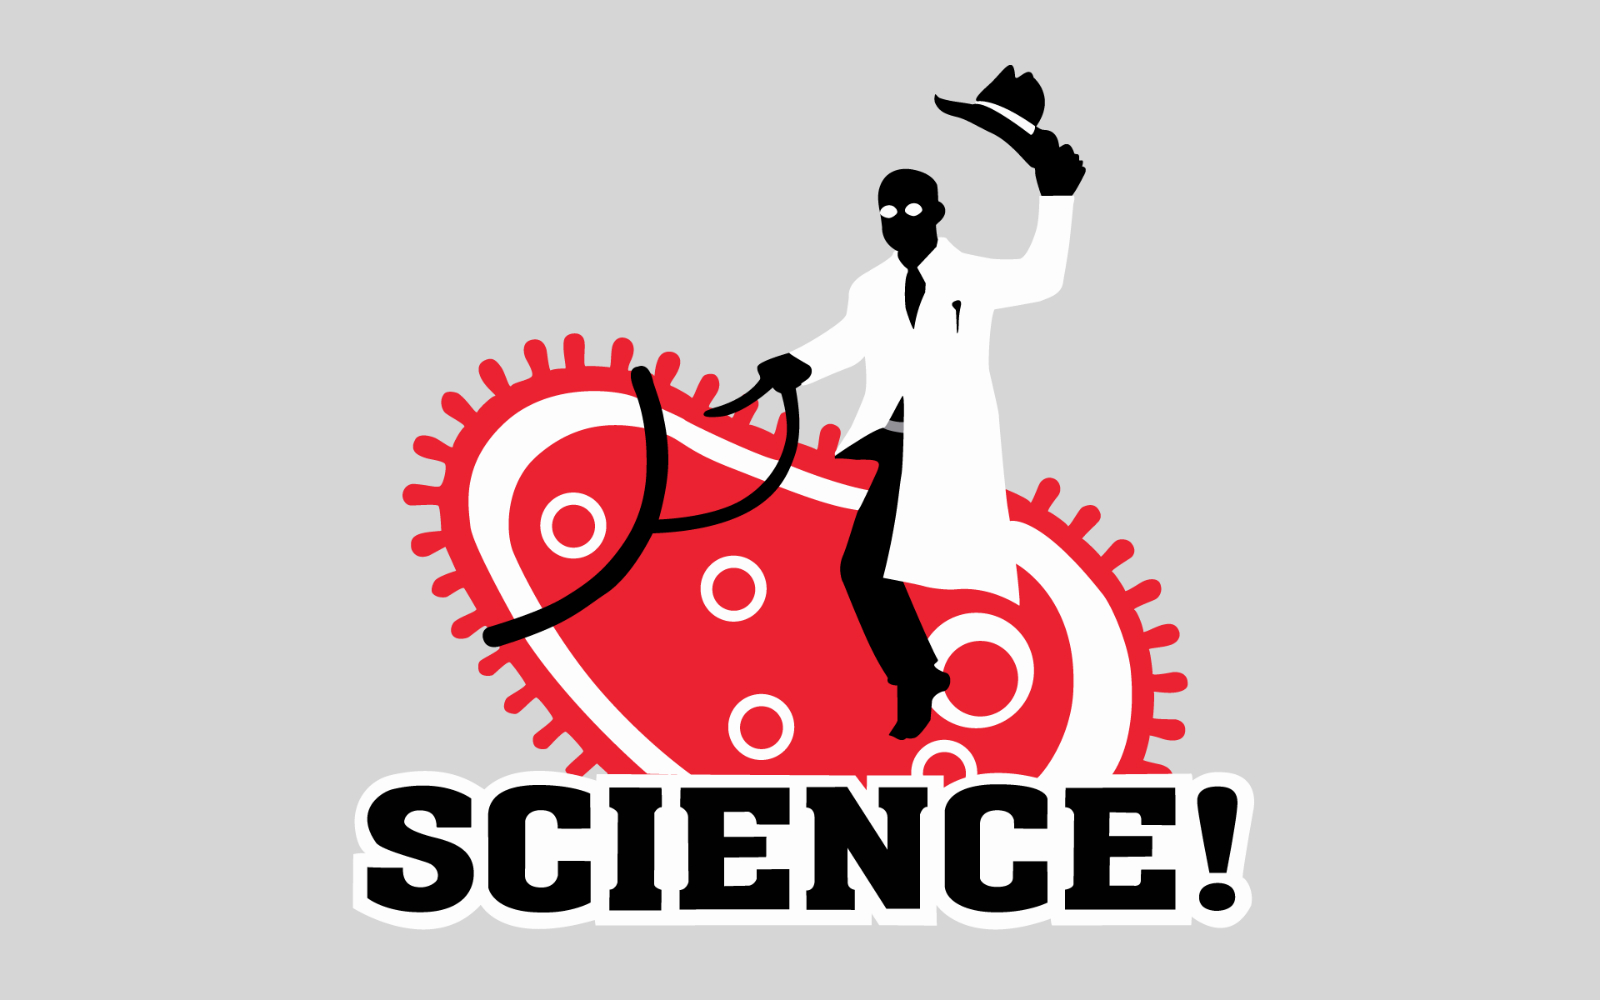 science funny wallpapers desktop anime backgrounds chemistry facts scientists hd proven scientifically weird mitosis experiments study wallpapersafari student ak0 atom